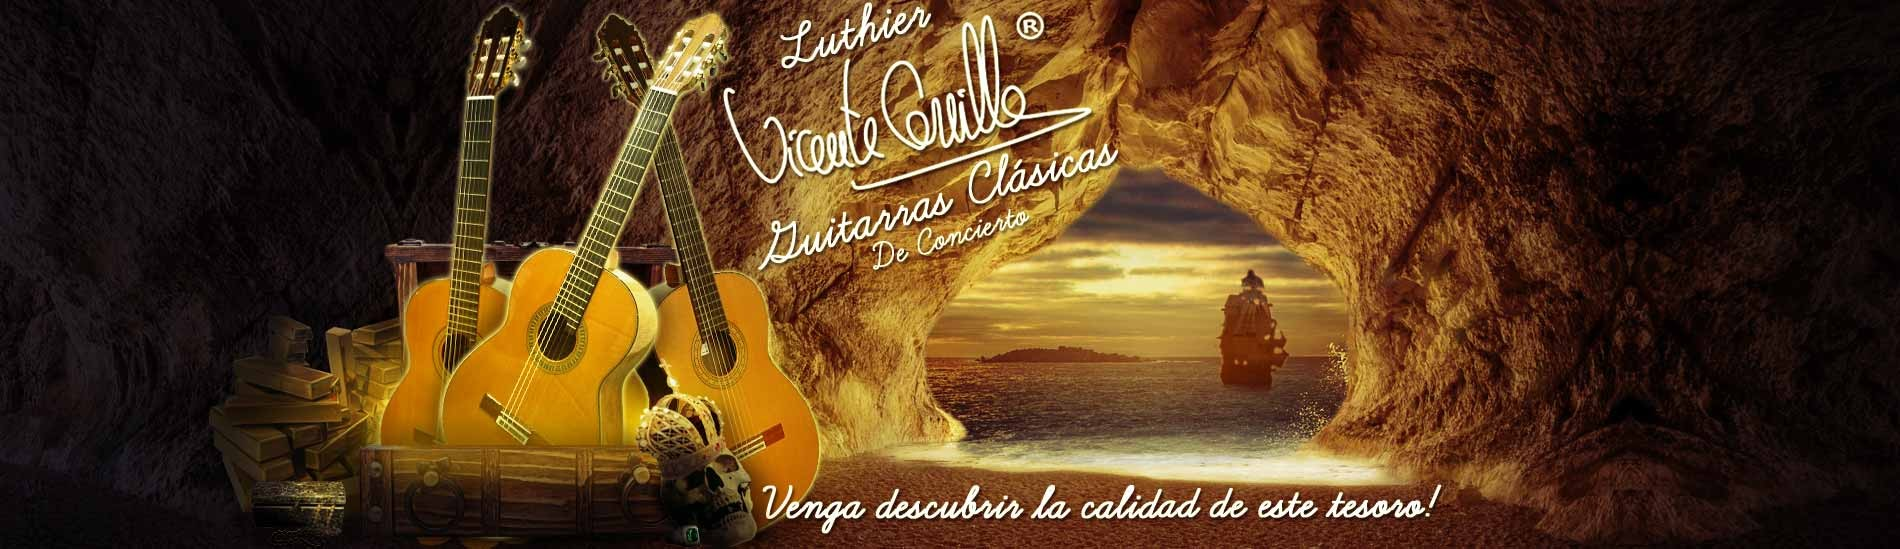 Luthier Vicente Carrillo